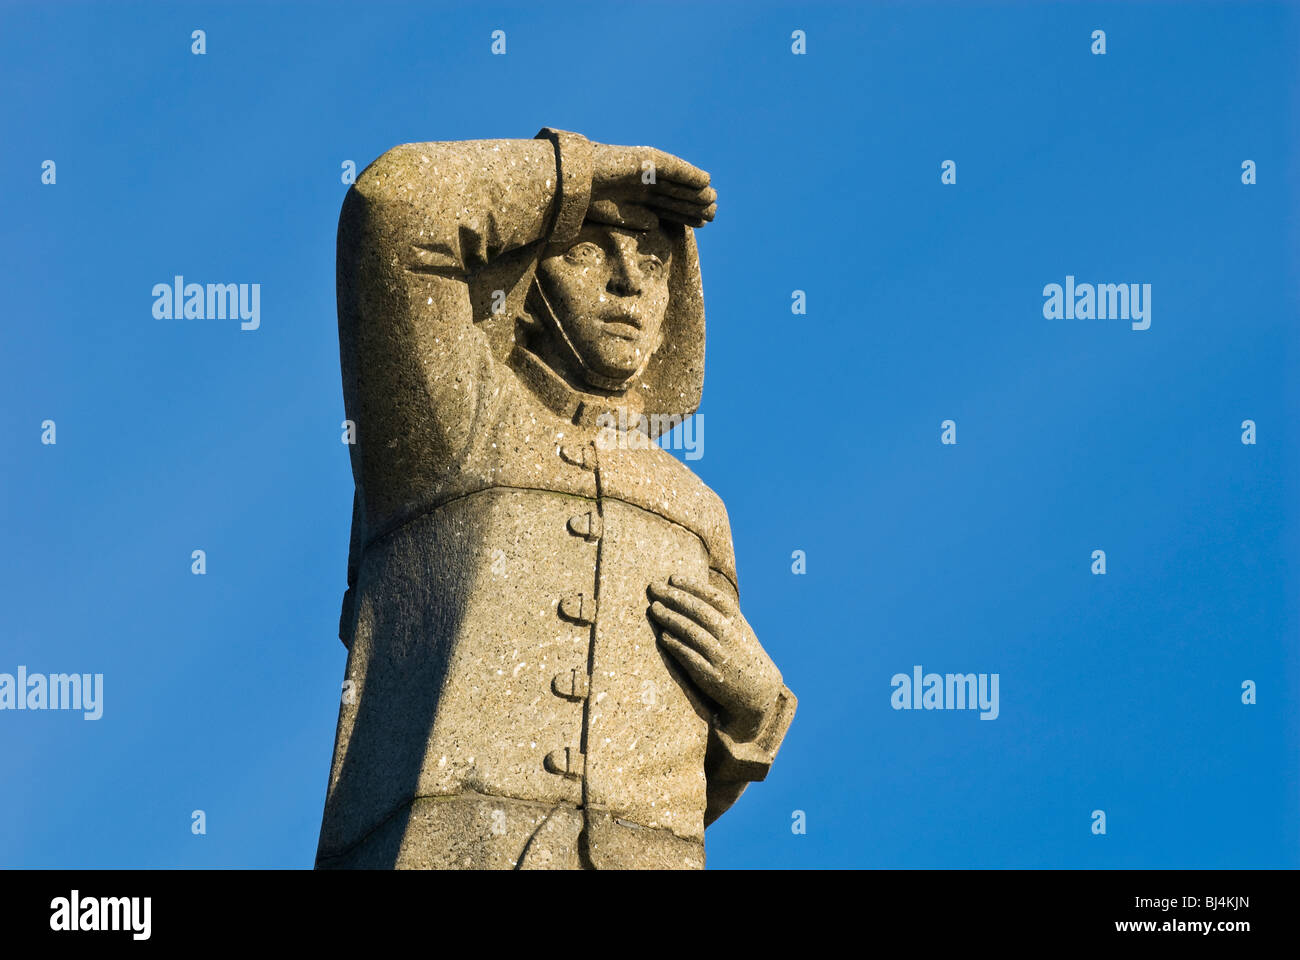 Monument to merchant sailors who died during WWII, Amsterdam, the Netherlands - Stock Image